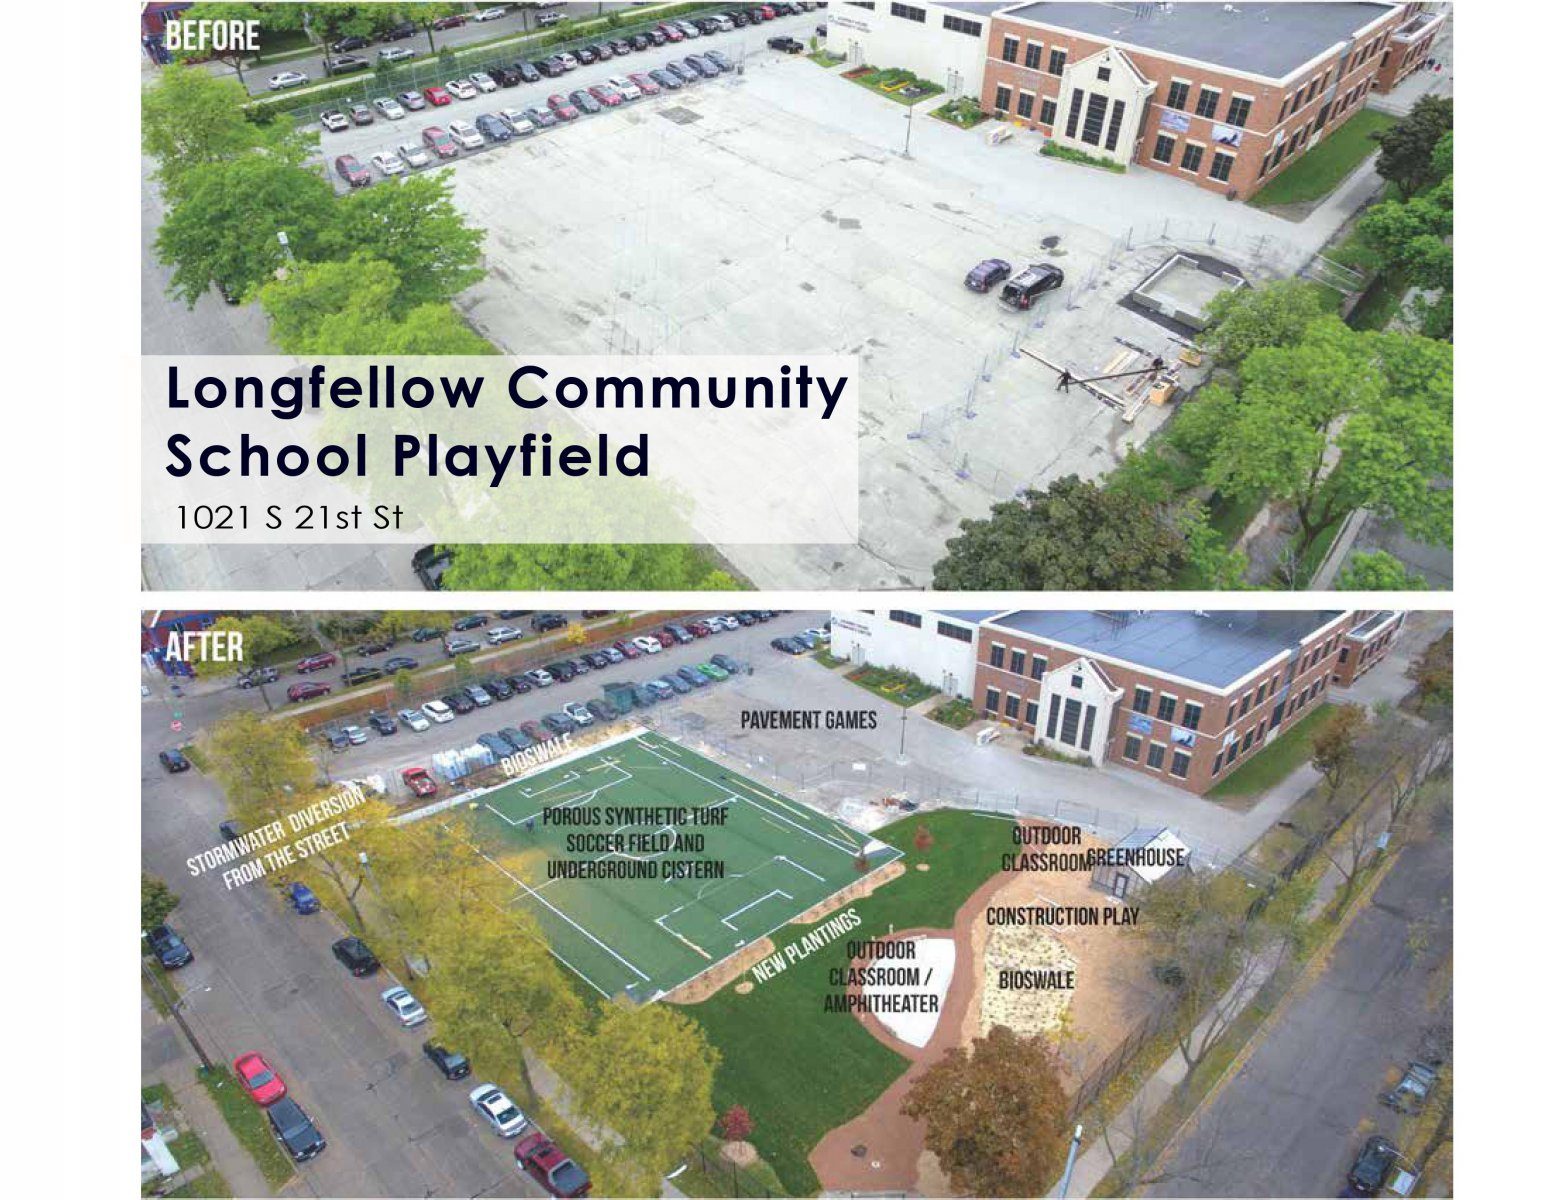 Longfellow Community School Playfield